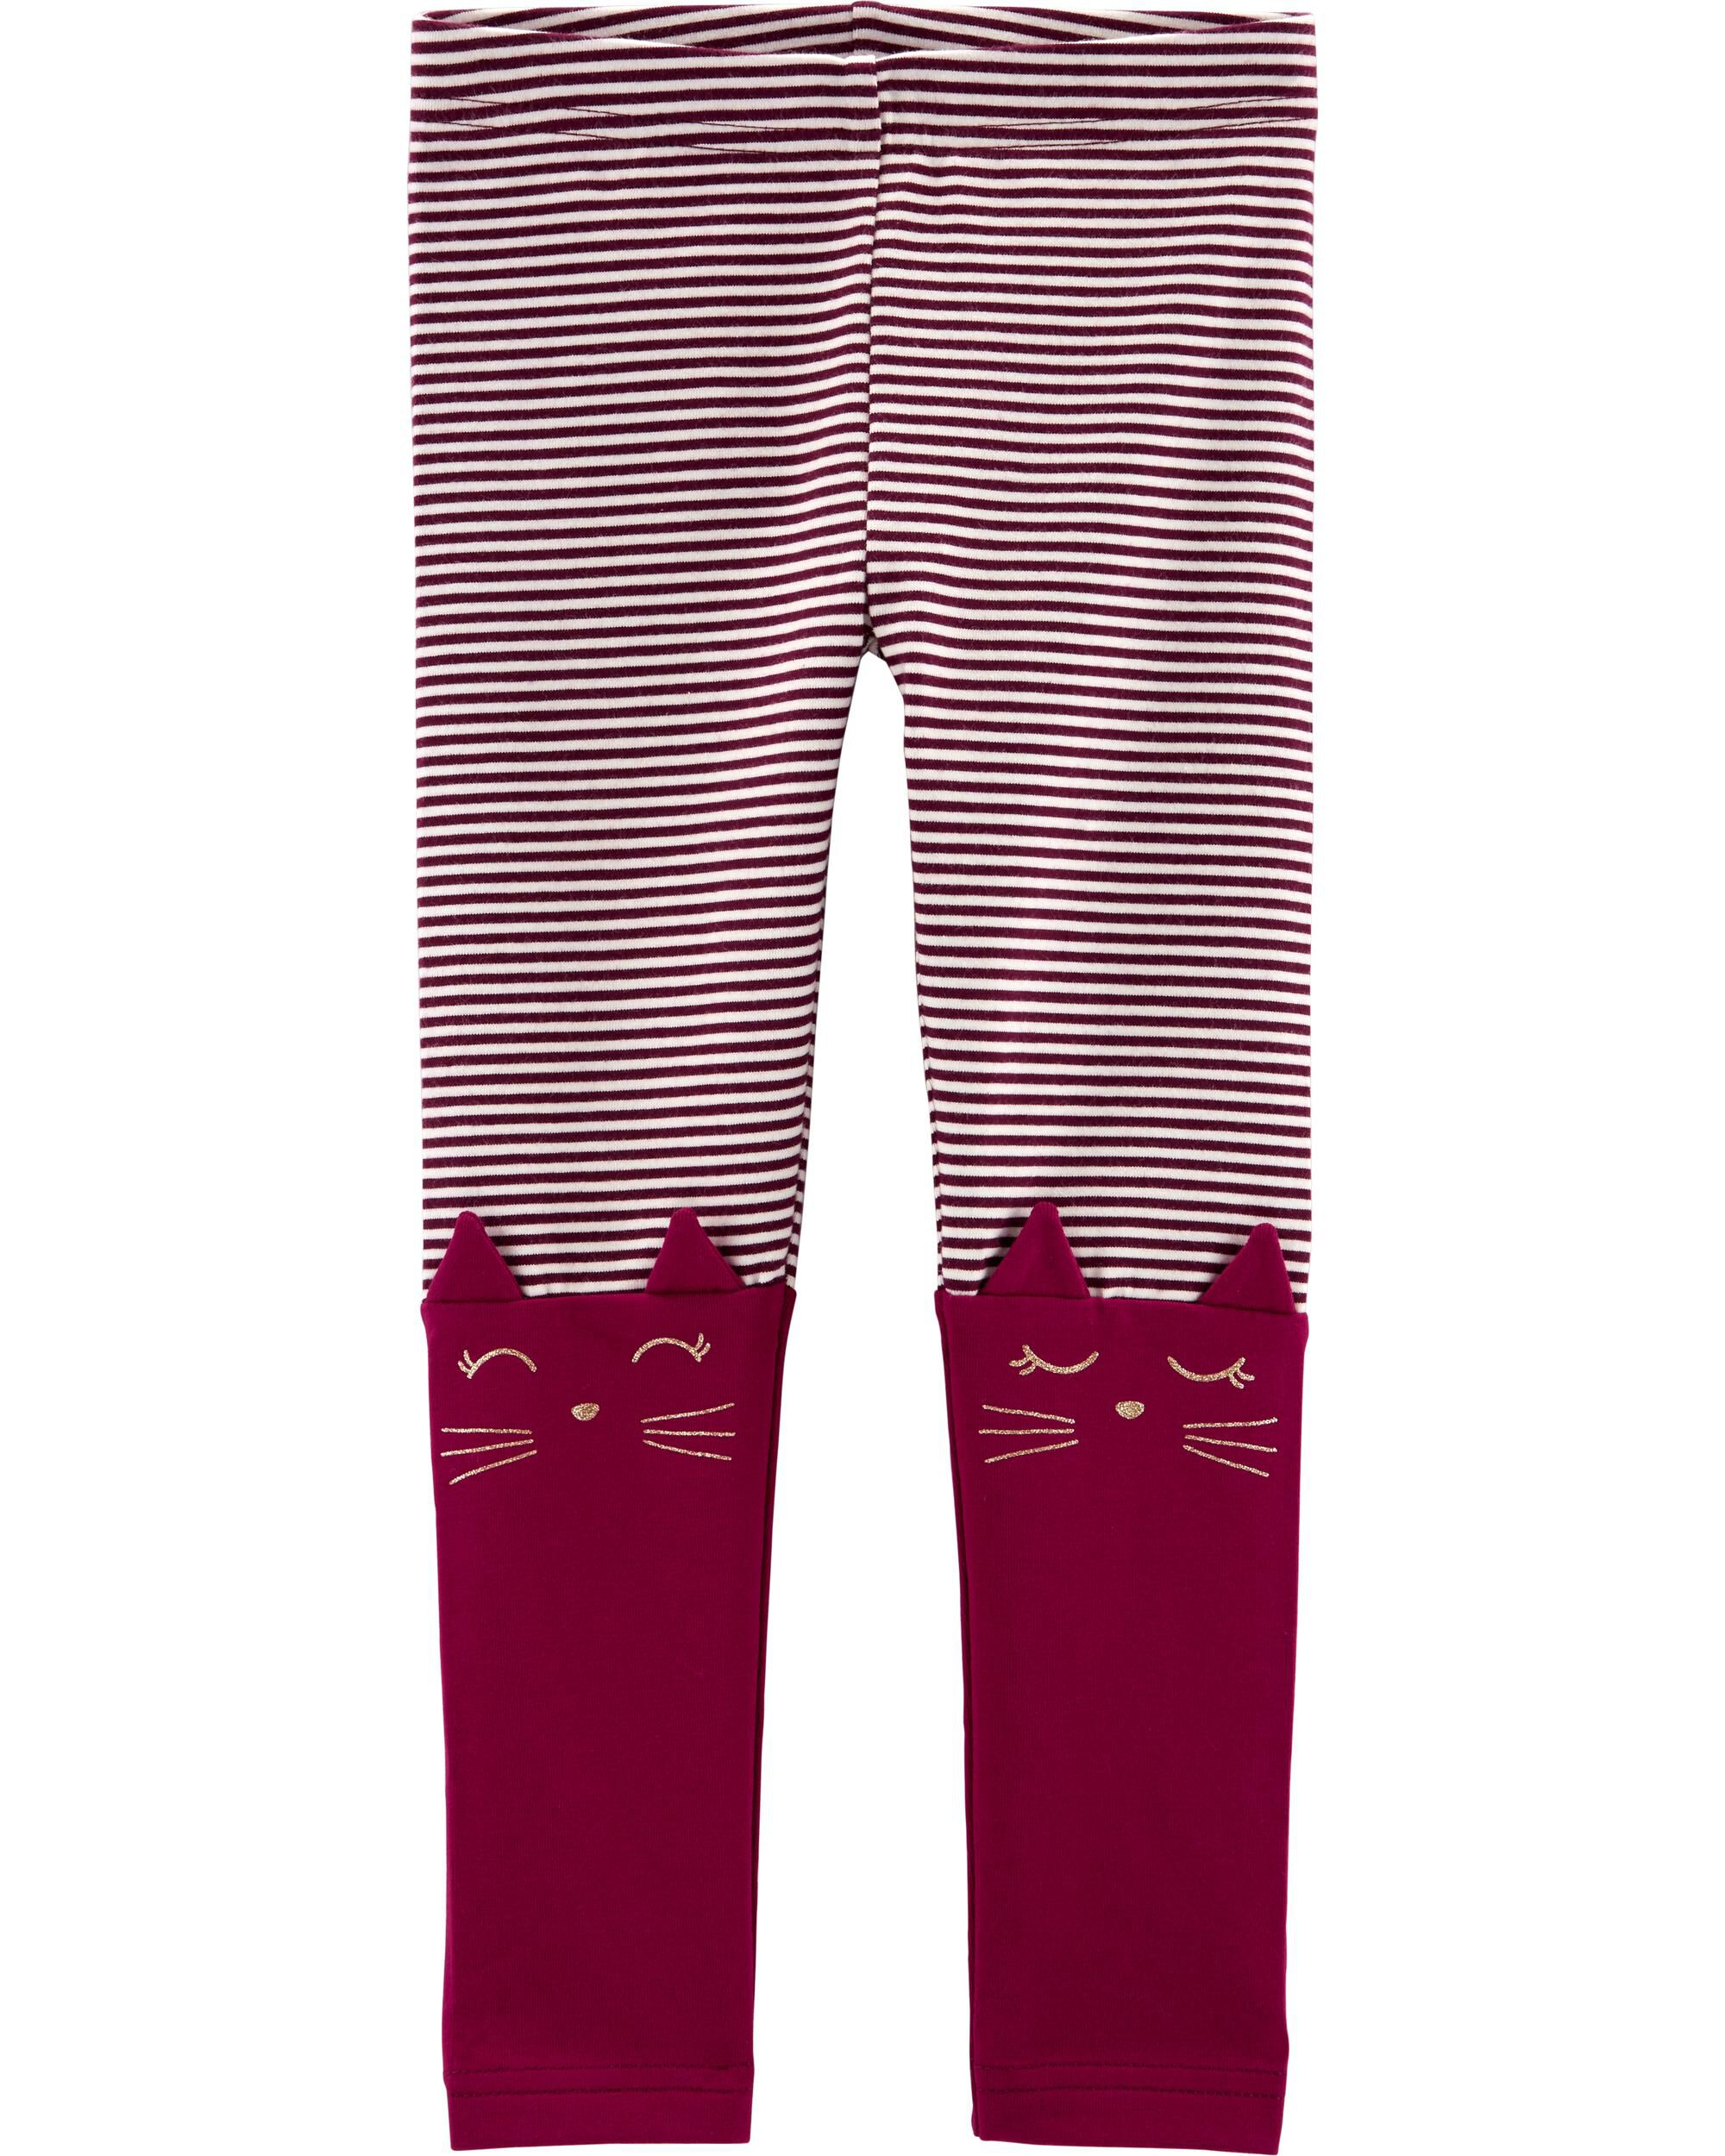 5b9ea66407179 2-Pack Cat Leggings | Carters.com